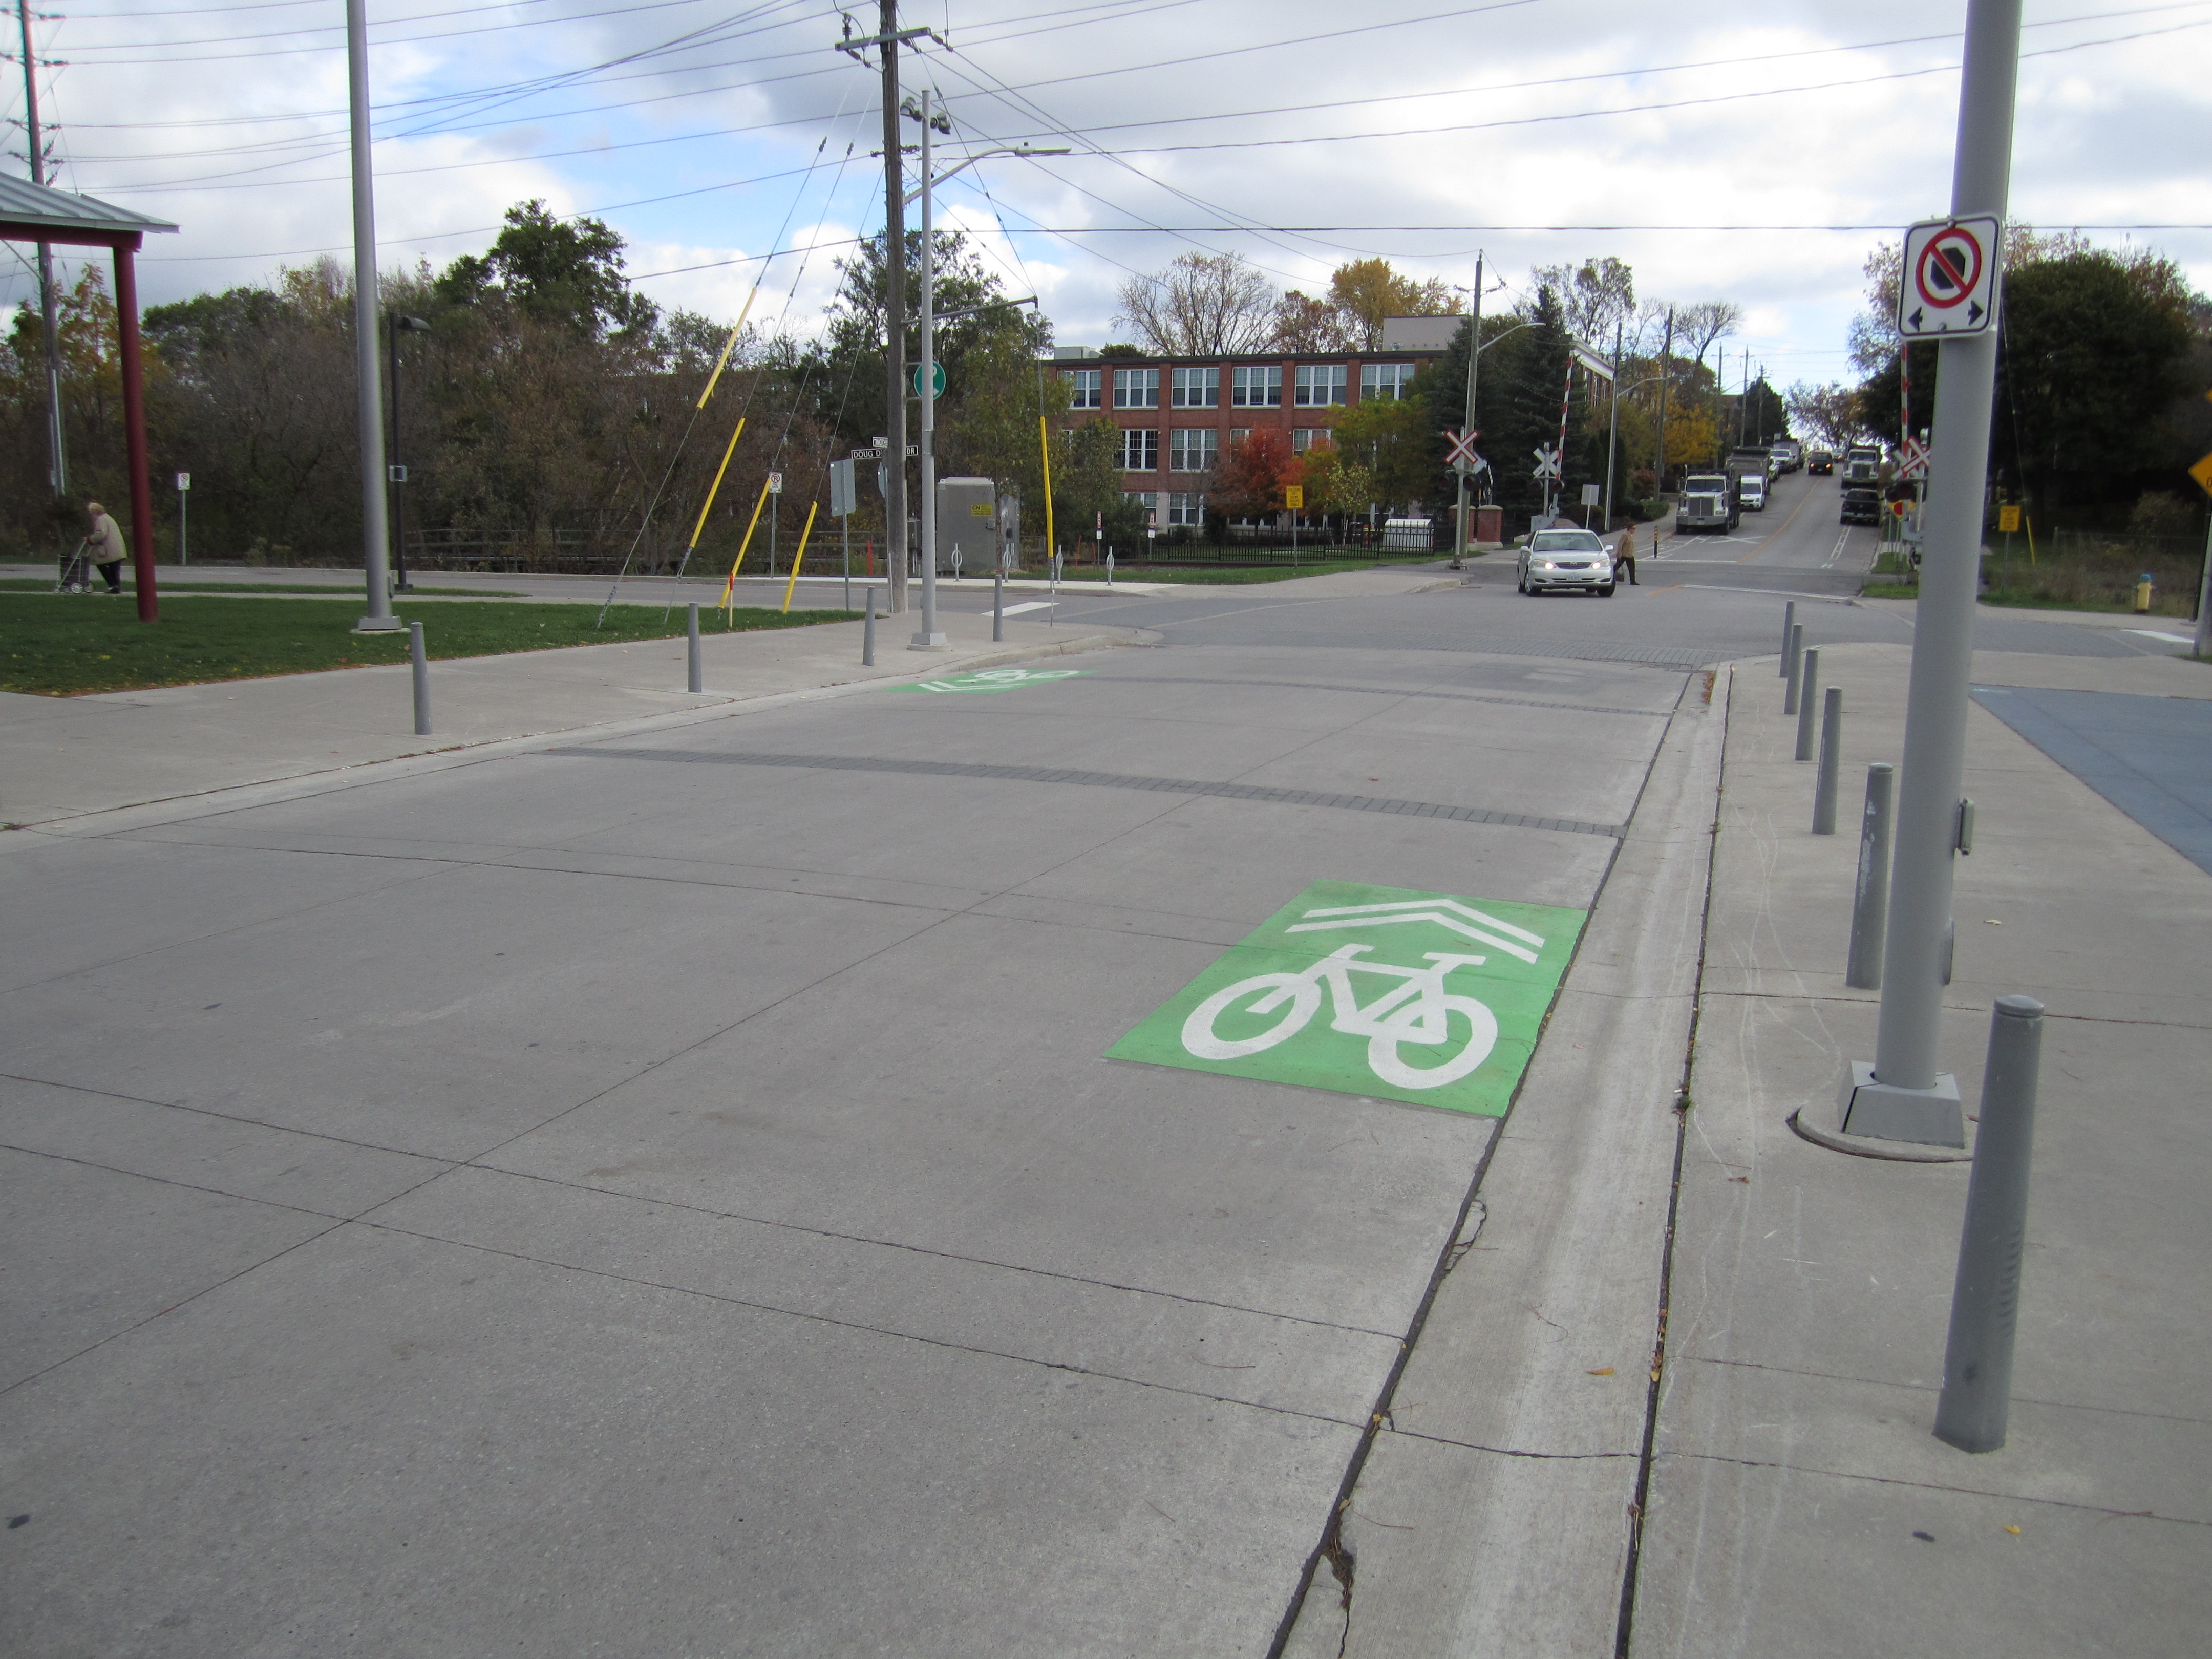 A picture of green route markers, or sharrows, on Timothy st looking eastbound